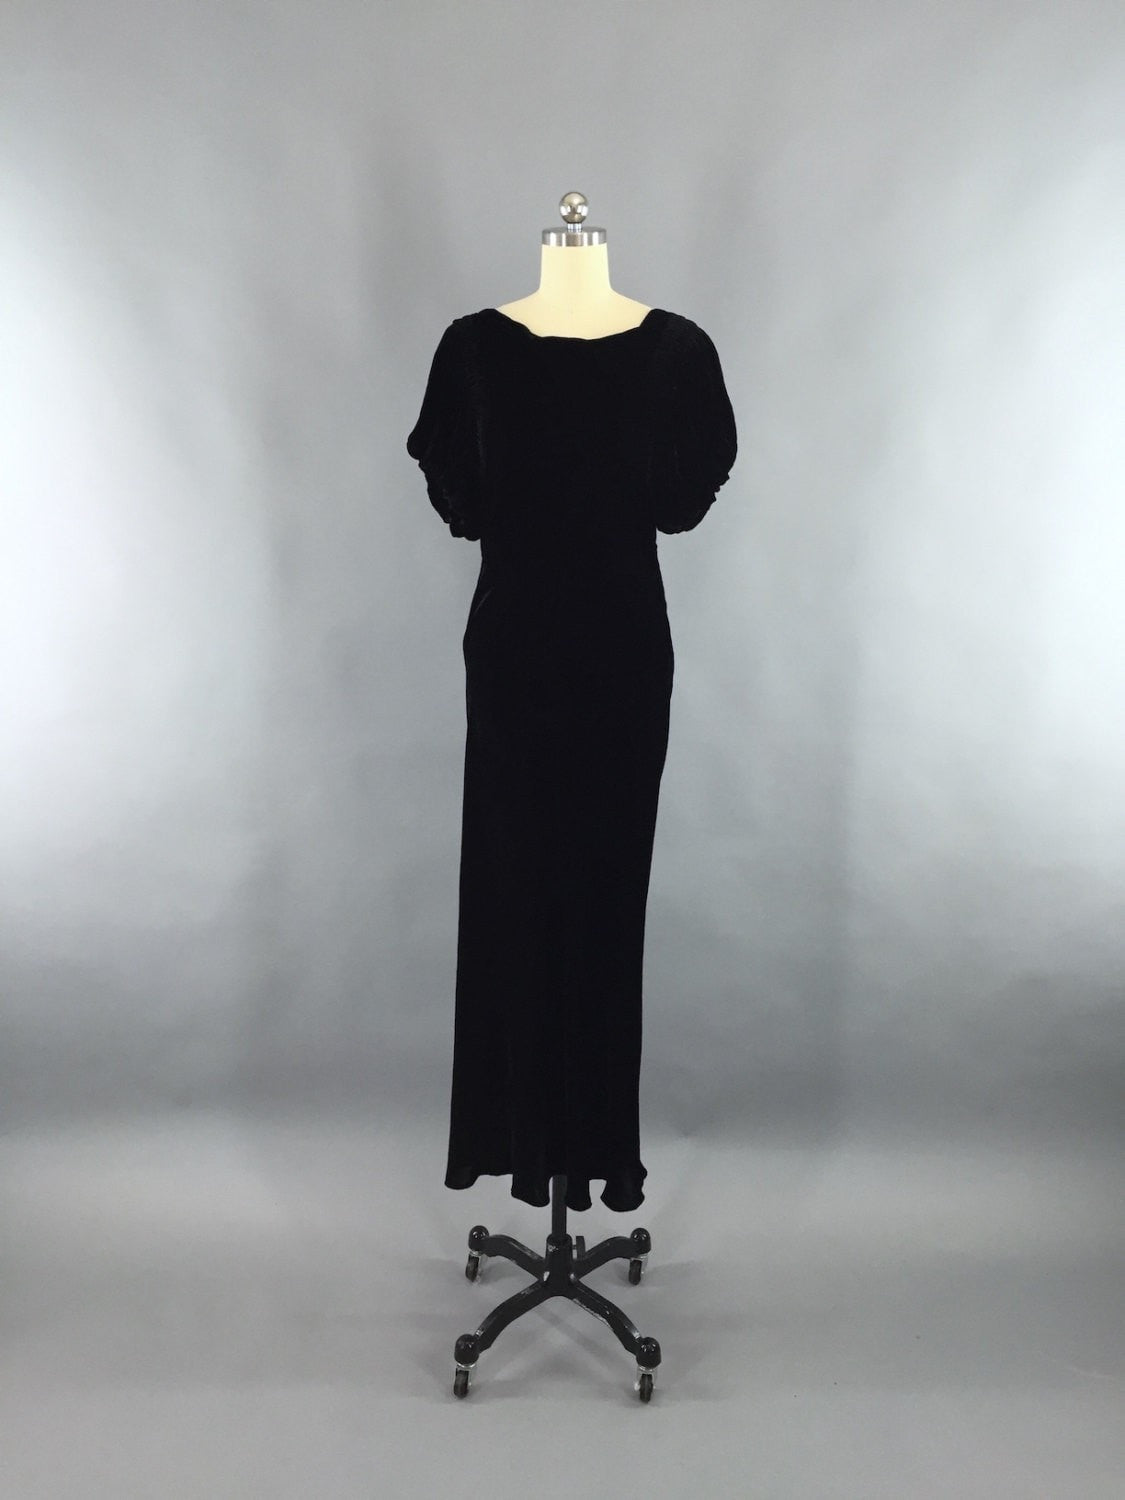 Vintage 1930s Dress / Bias Cut Dress Black Velvet Gown Dress ThisBlueBird